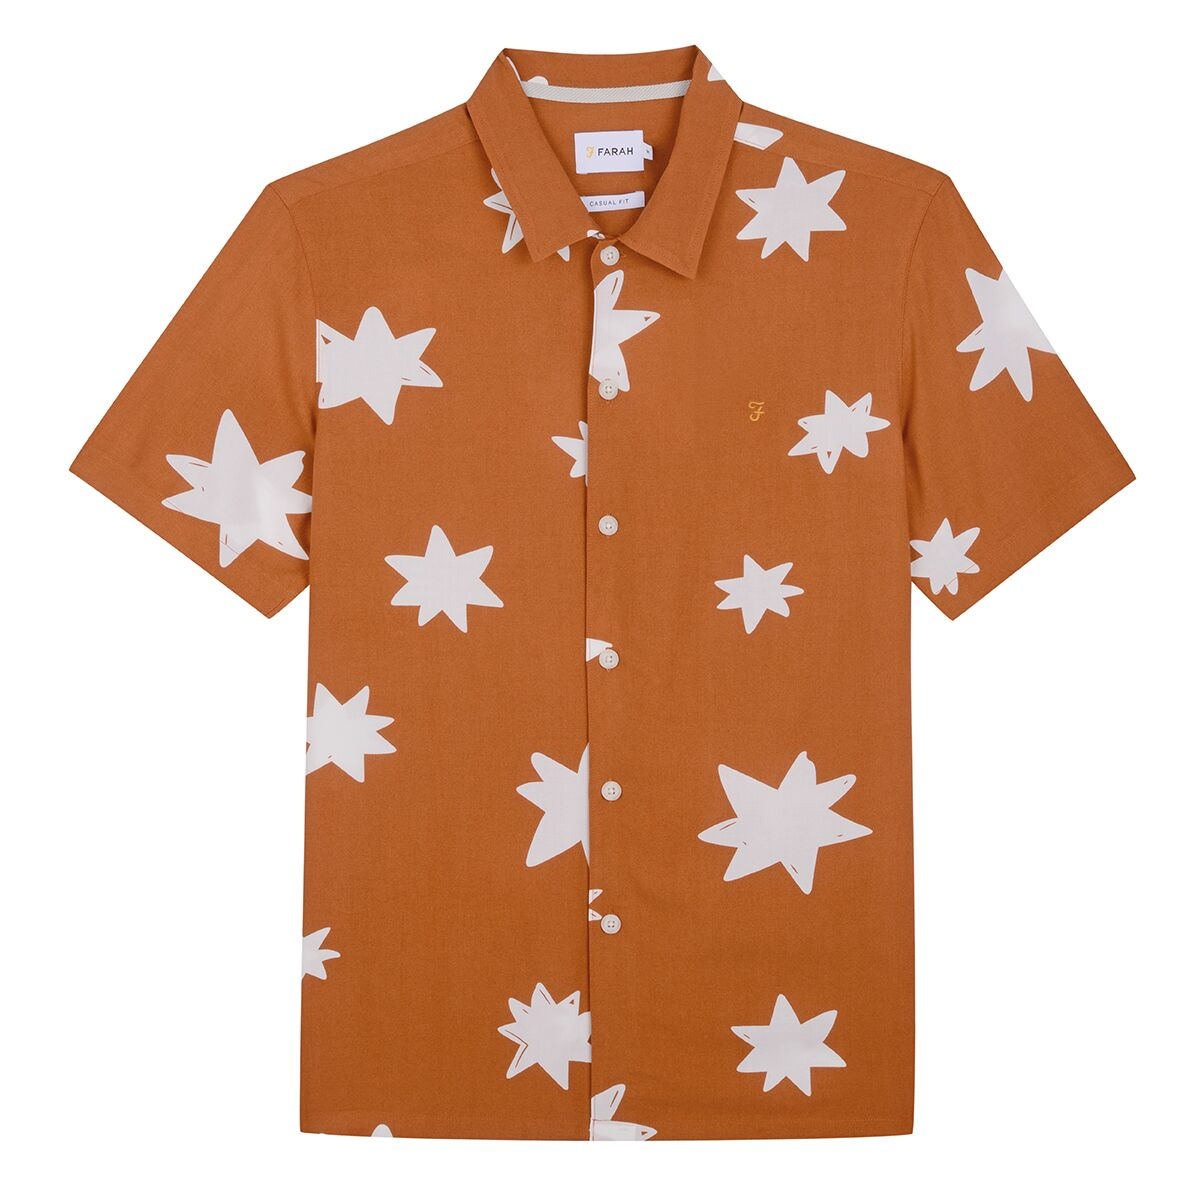 Farah Santiago shirt - £65 - Start thinking about your summer wardrobe, with this shirt which would be perfect for walks along the beach at night